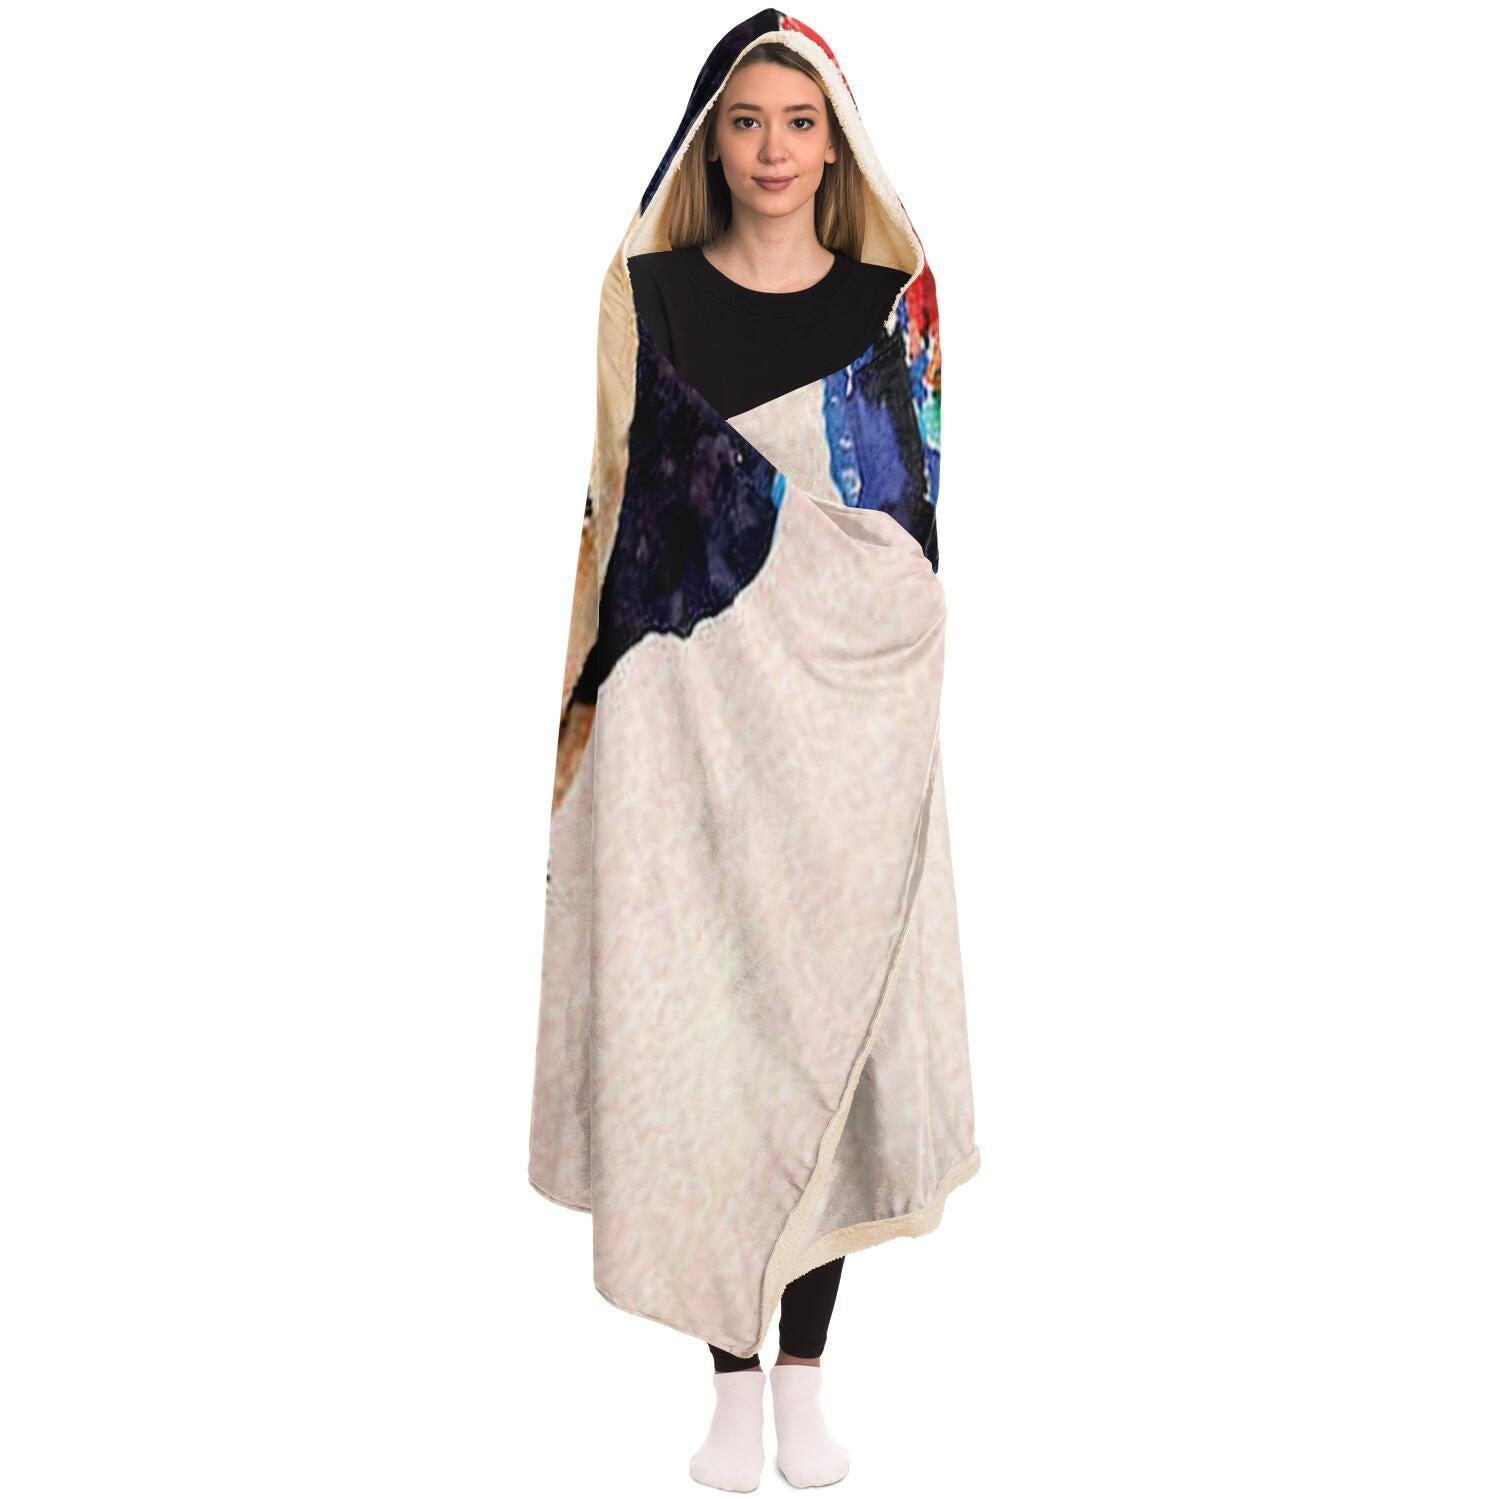 Frida Navy Hooded Blanket